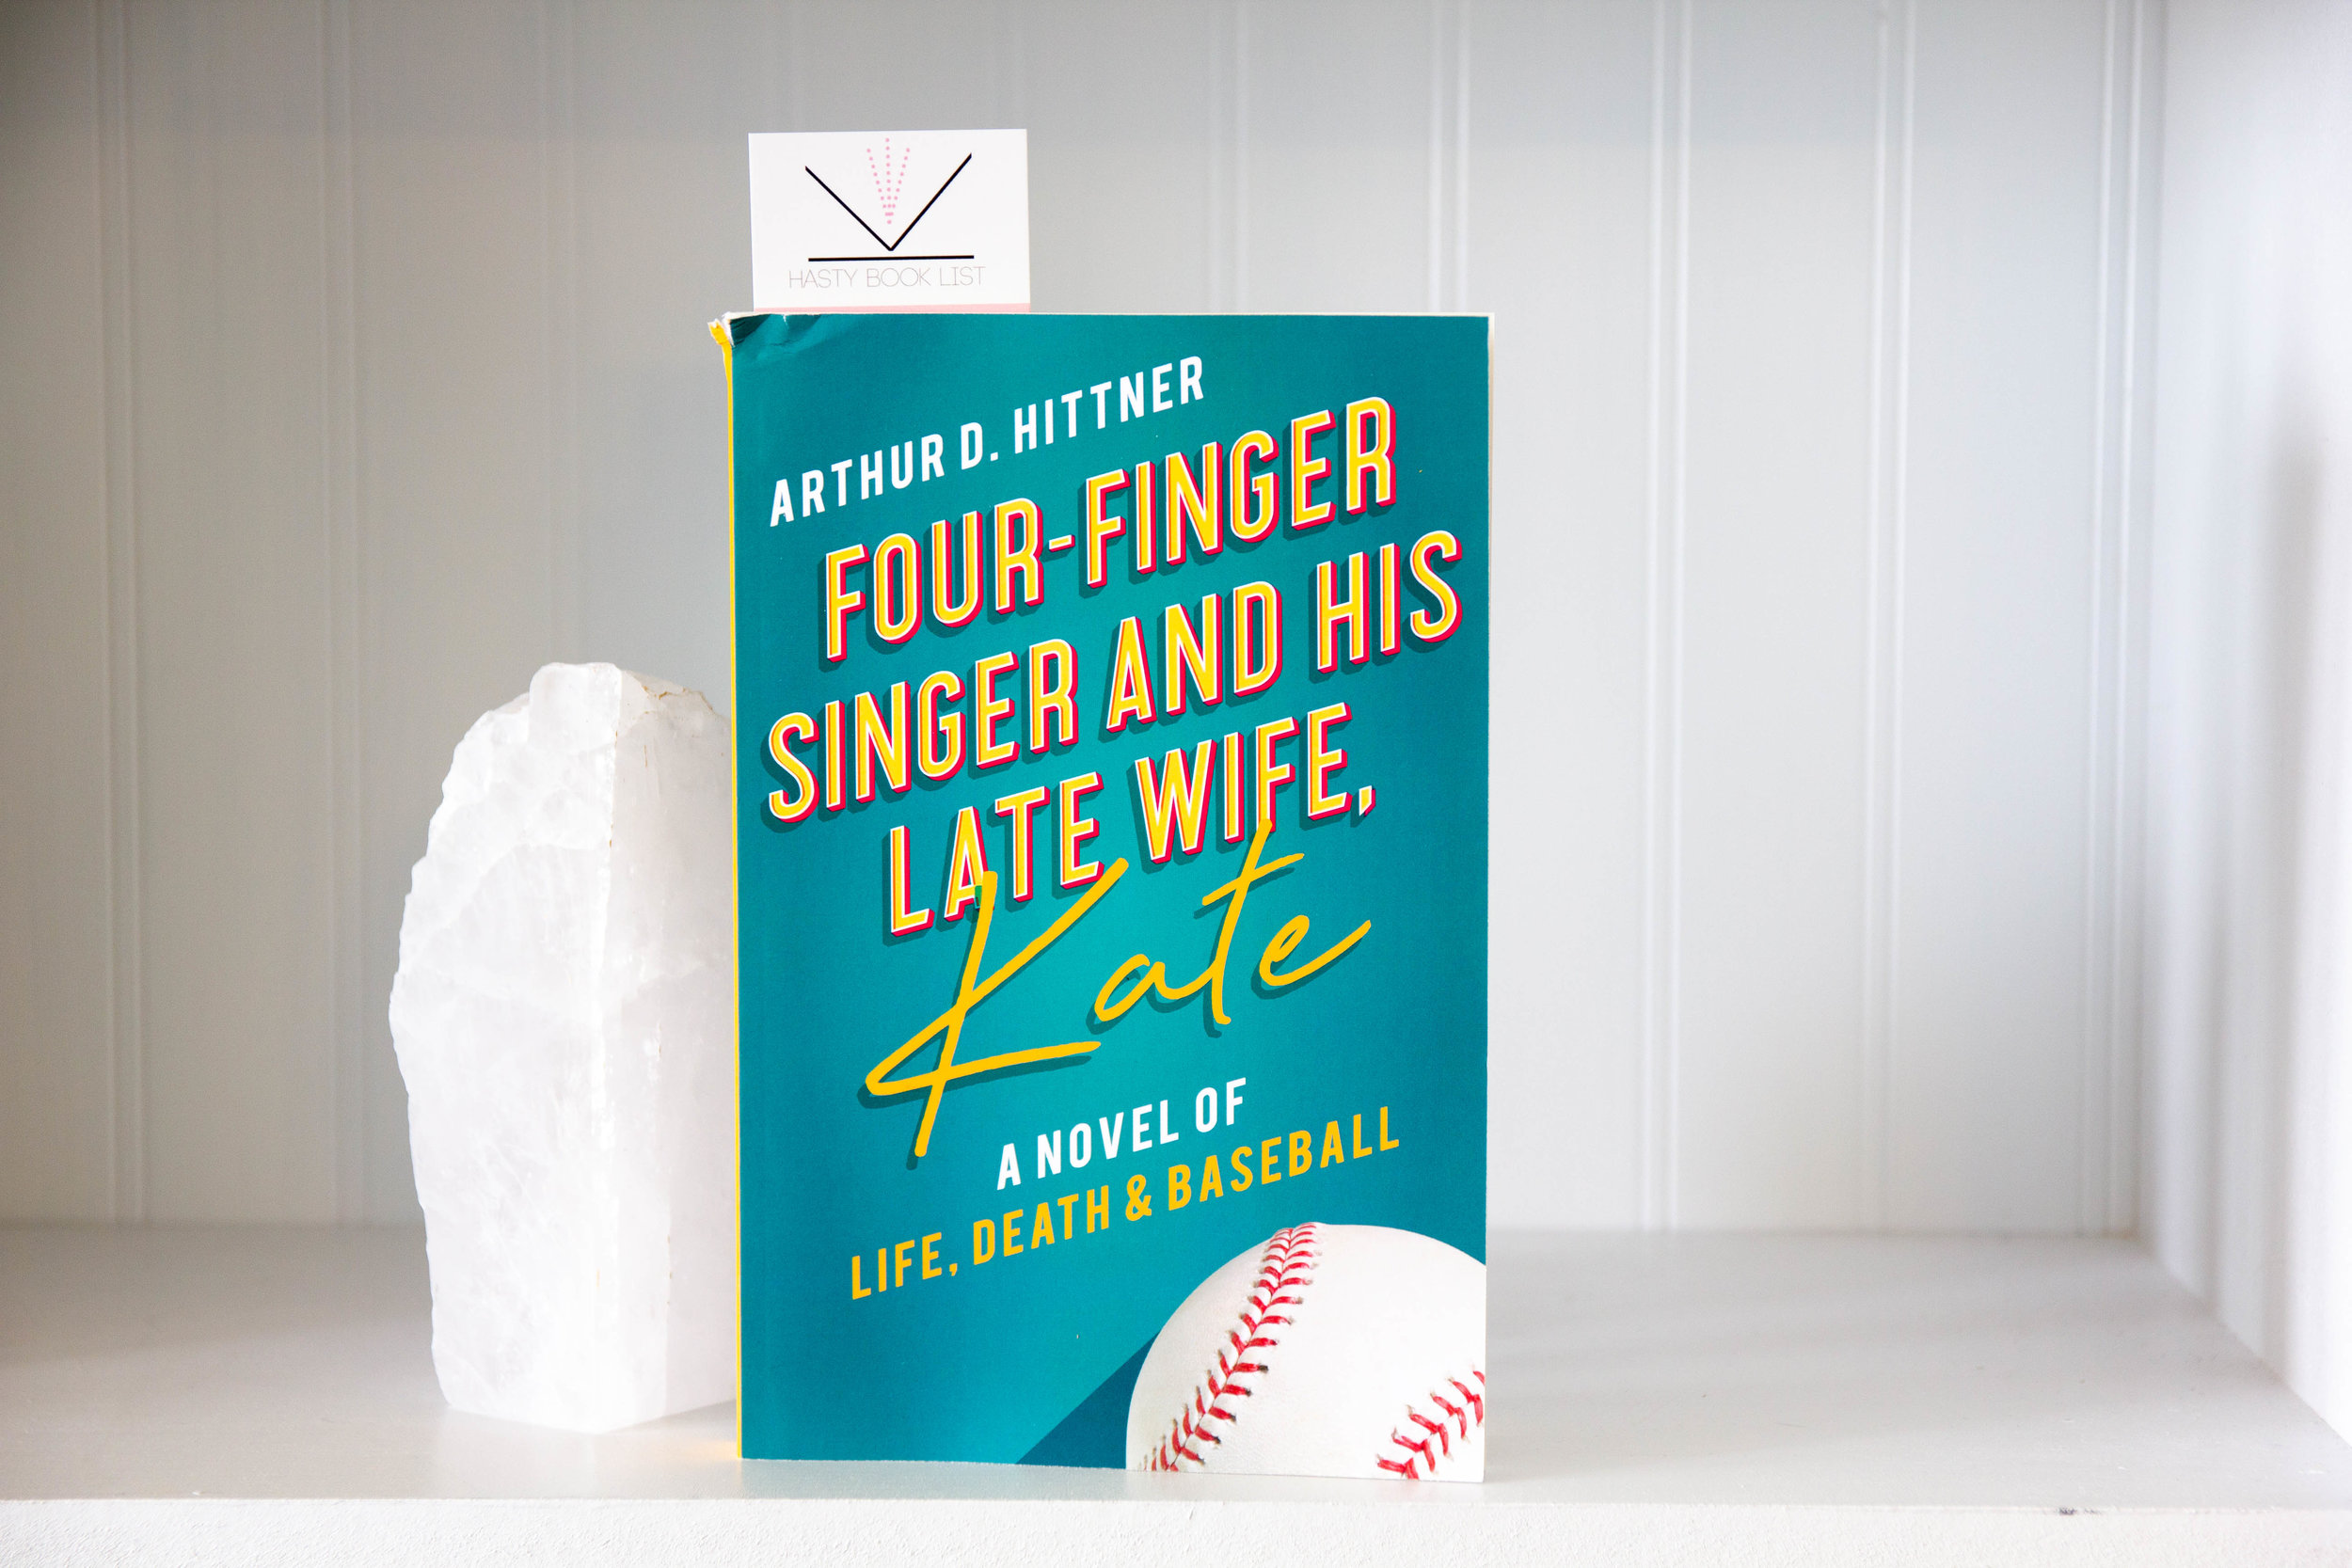 Book Feature - Four-Finger Singer and His Late Wife Kate by Arthur D. Hittner